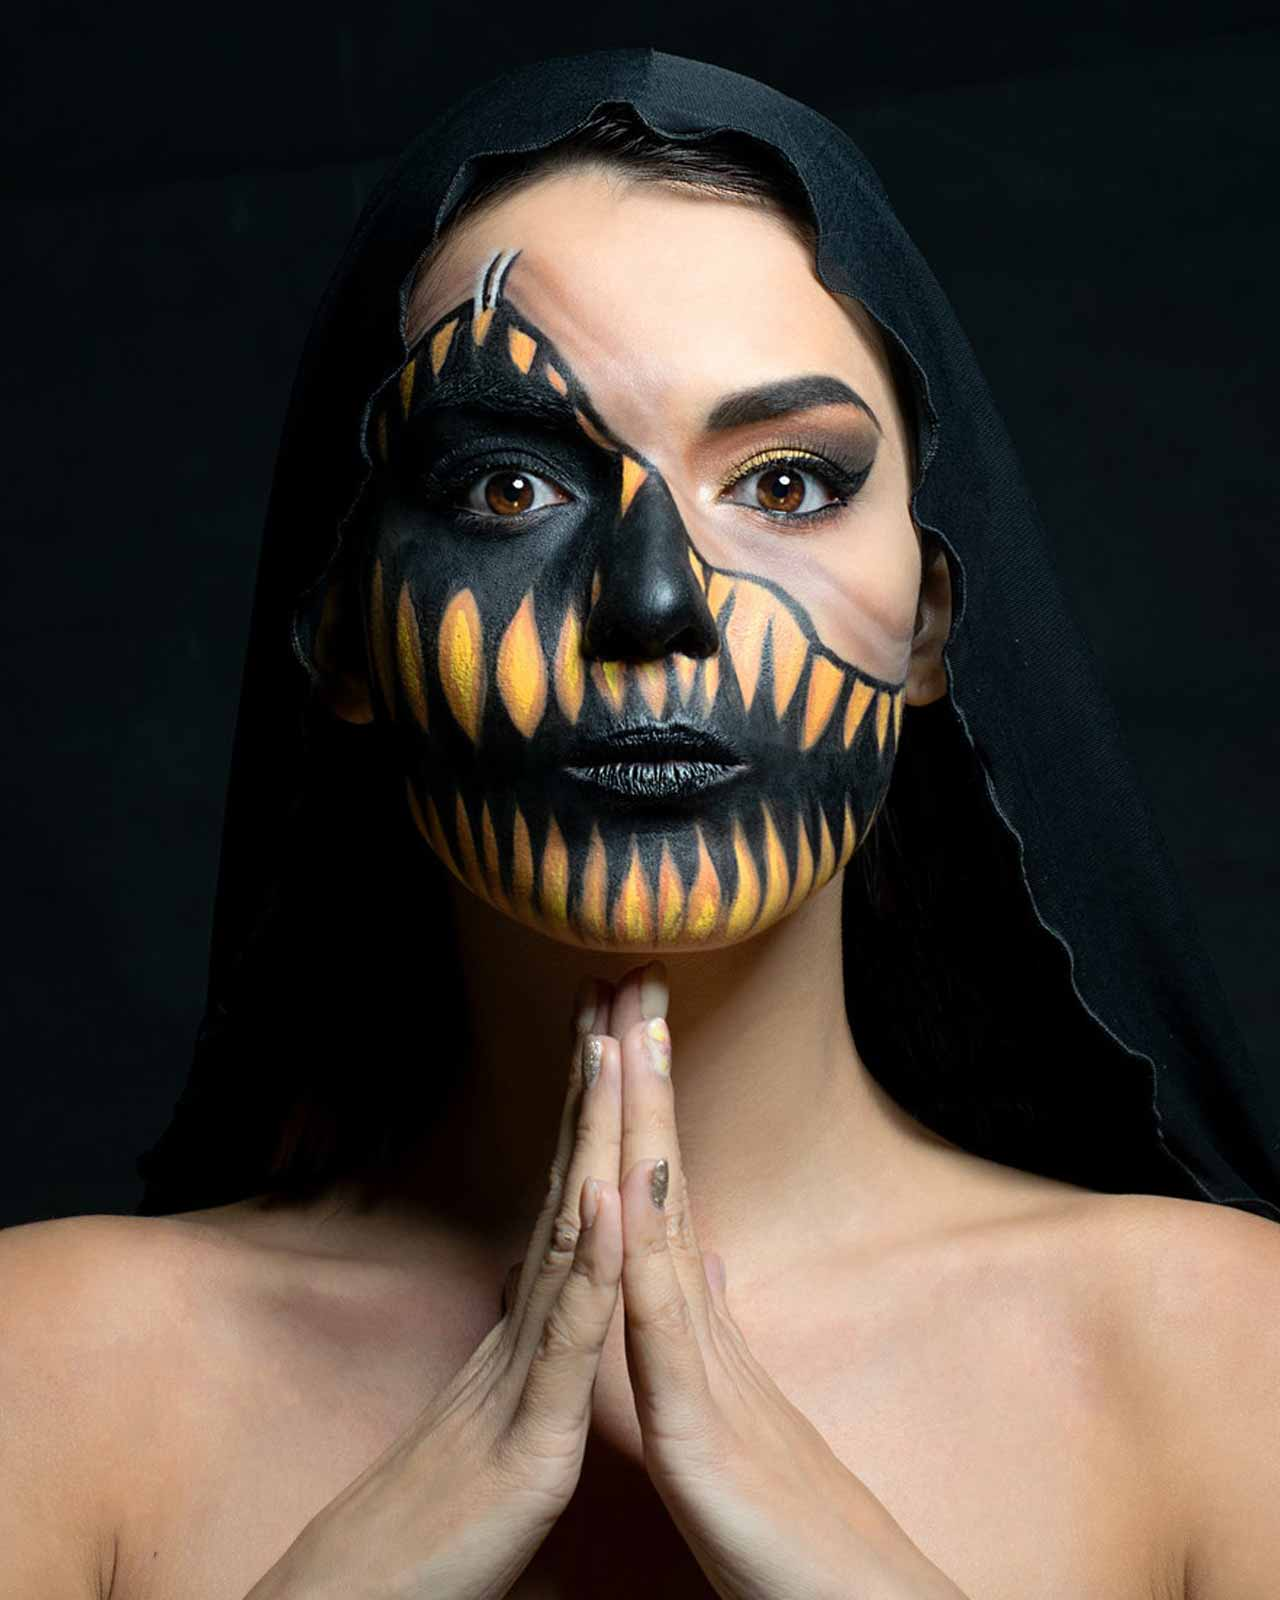 photo-of-woman-with-face-paint-4035259